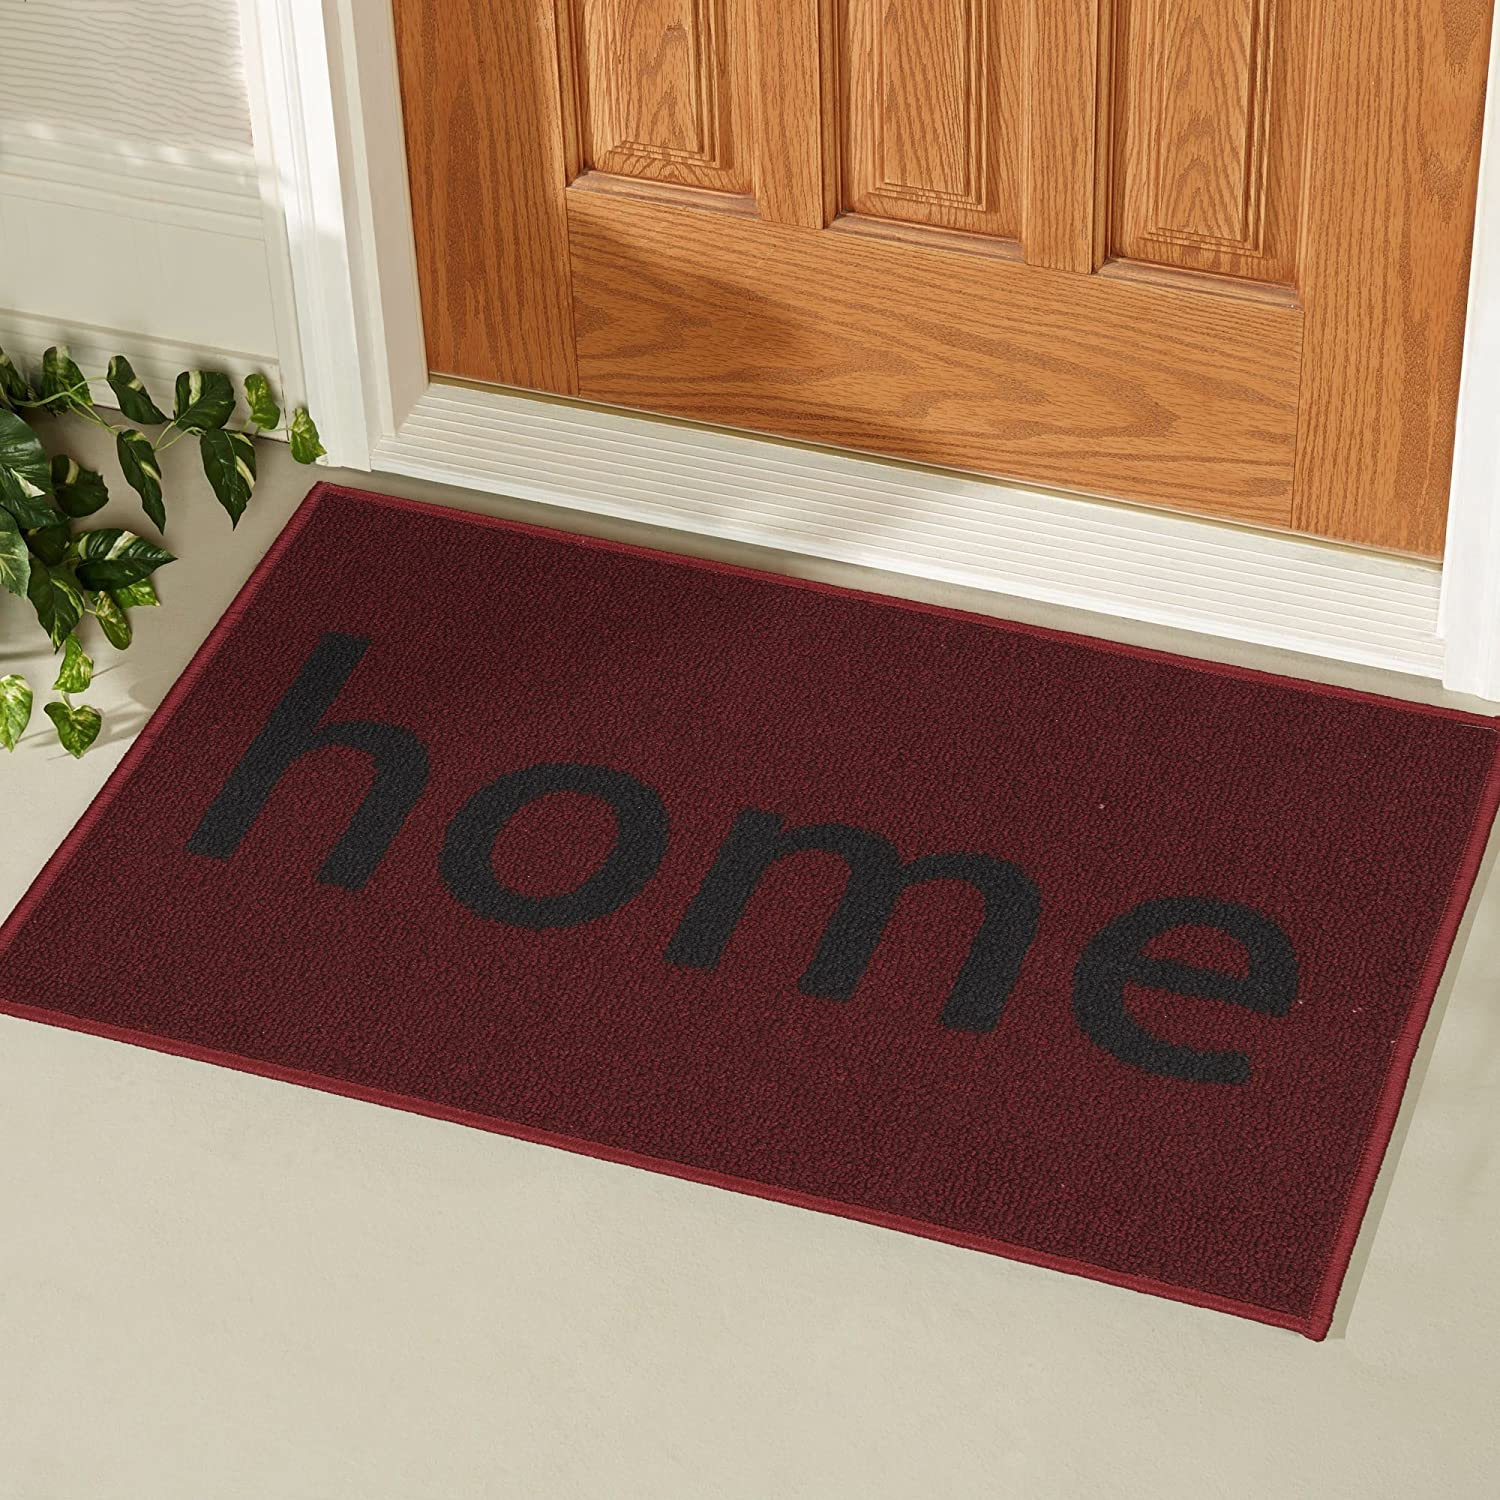 20 X 30 Beige Welcome OTTOMANSON Doormat